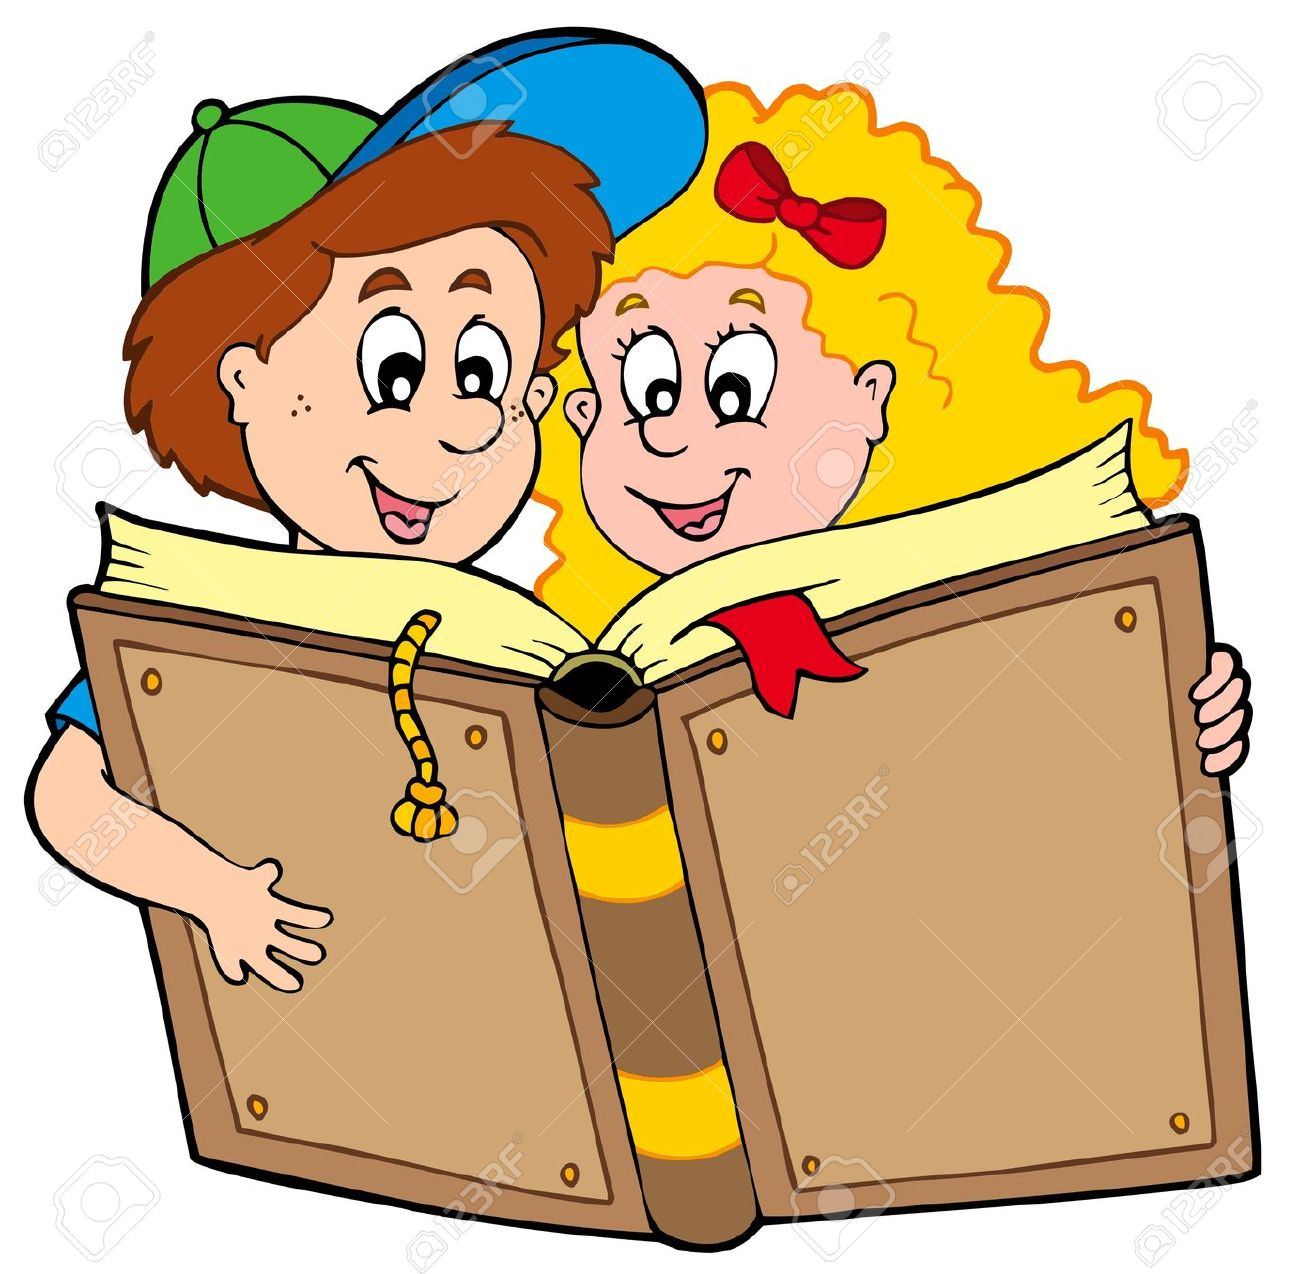 reading books clipart at getdrawings com free for personal use rh getdrawings com girl reading book clipart boy reading book clipart